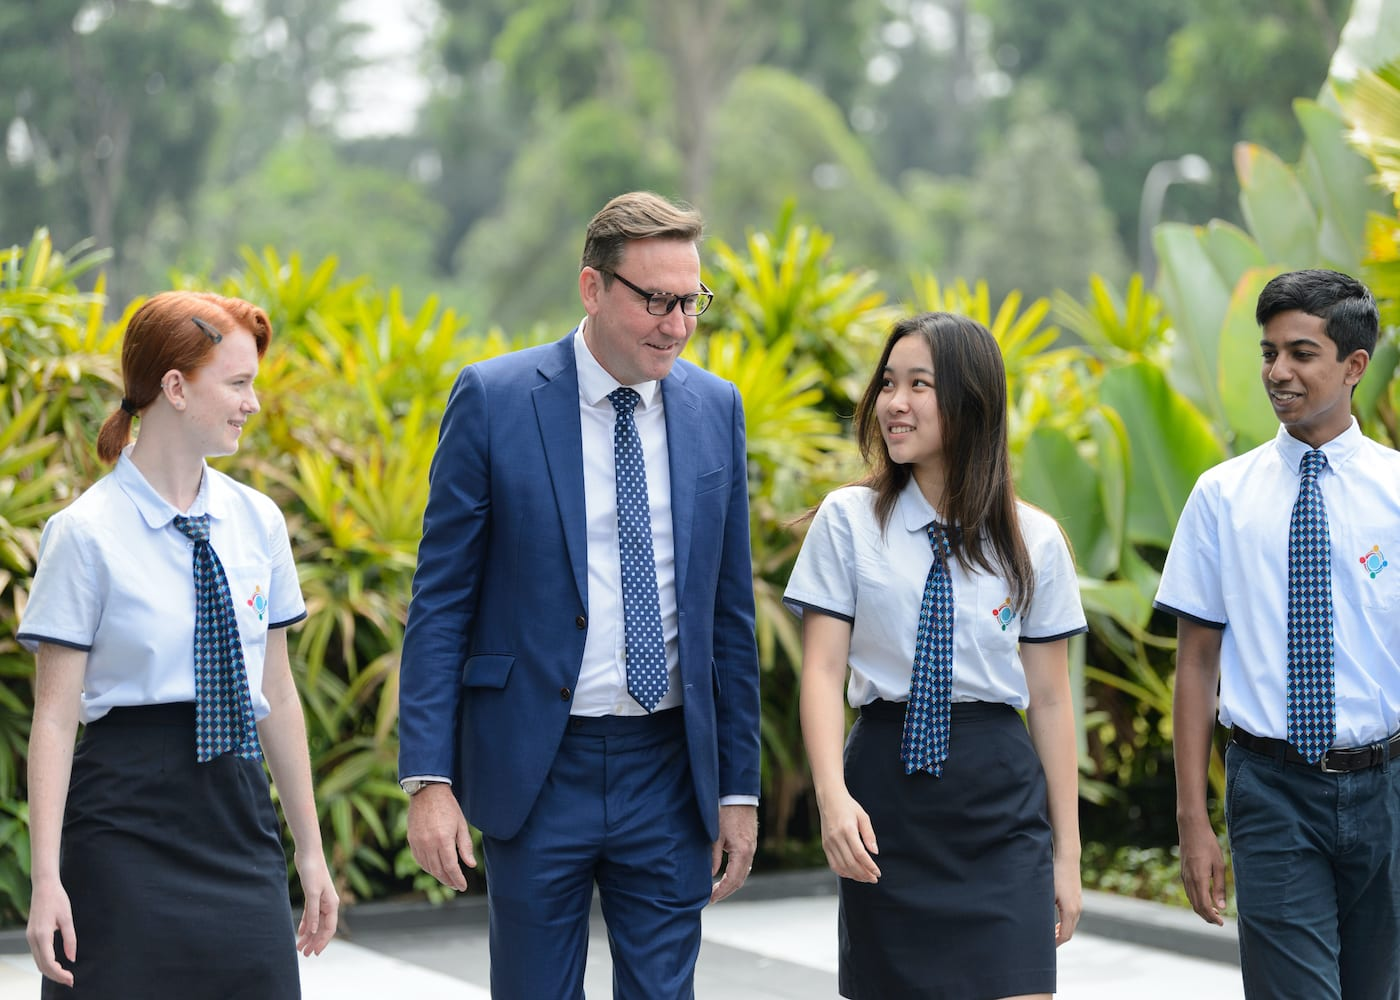 VIDEO: Learn more about GEMS (Singapore)'s exciting graduation pathways